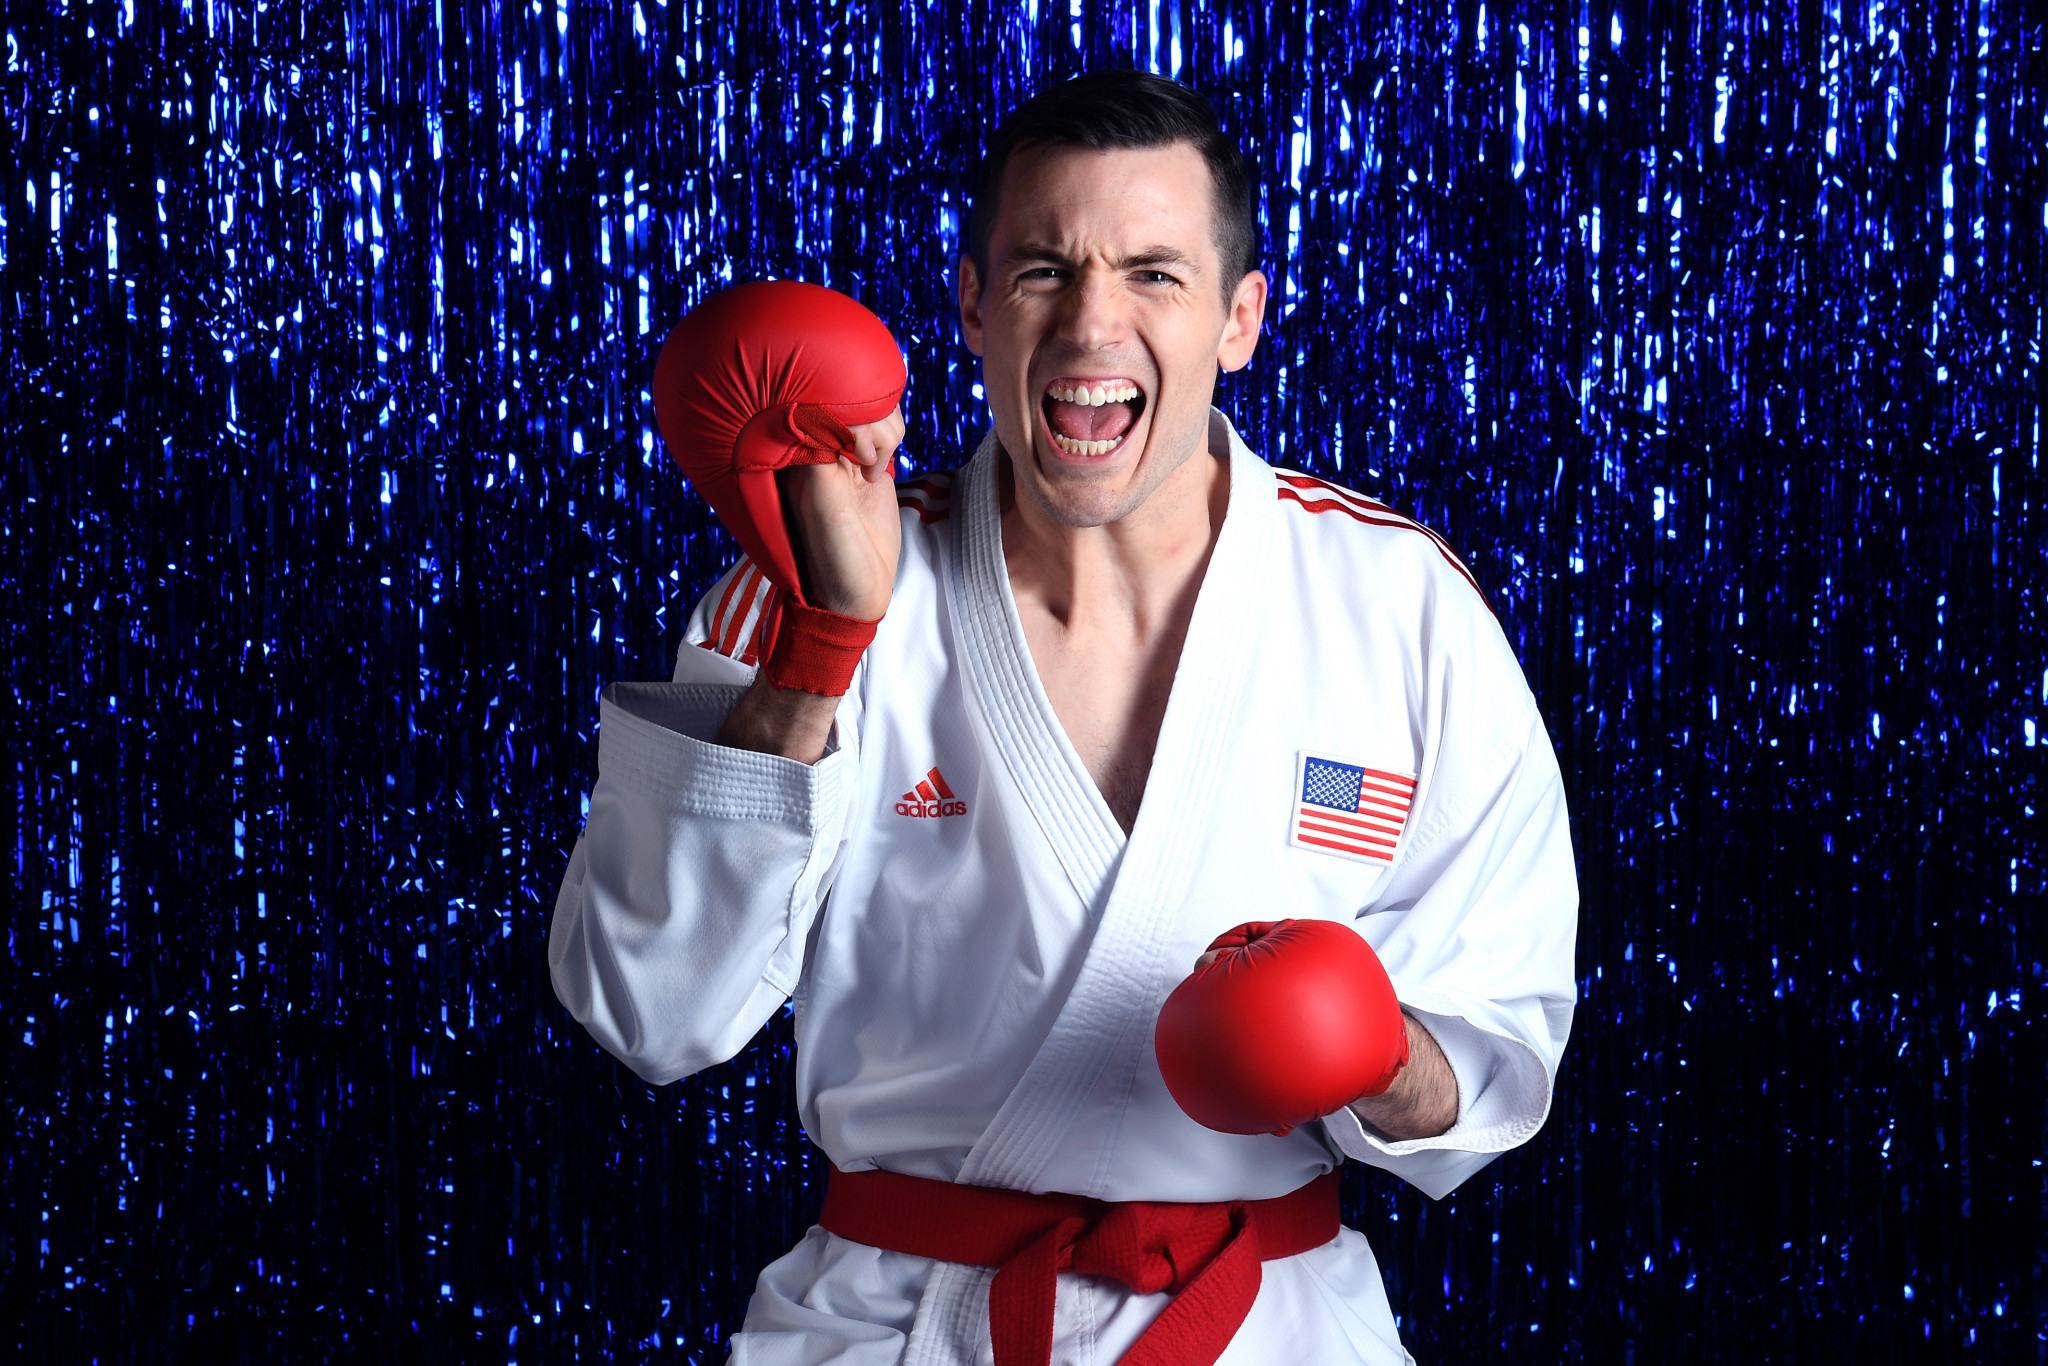 American Thomas Scott has now qualified for the Olympic karate competition ©Getty Images